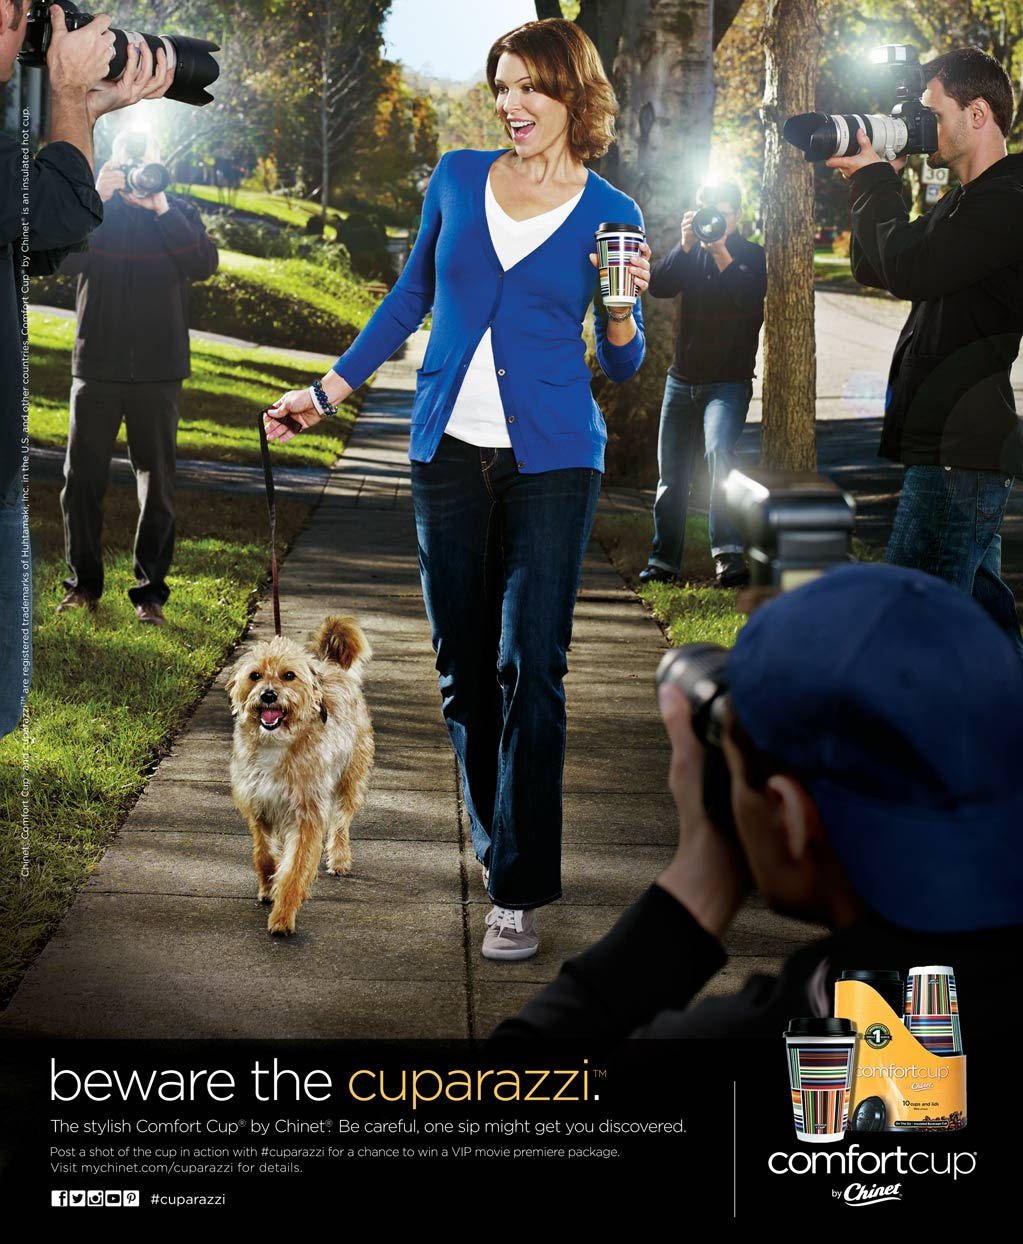 Mark DeLong - Commercial Photography - Woman walks dog as paparazzi take pictures.